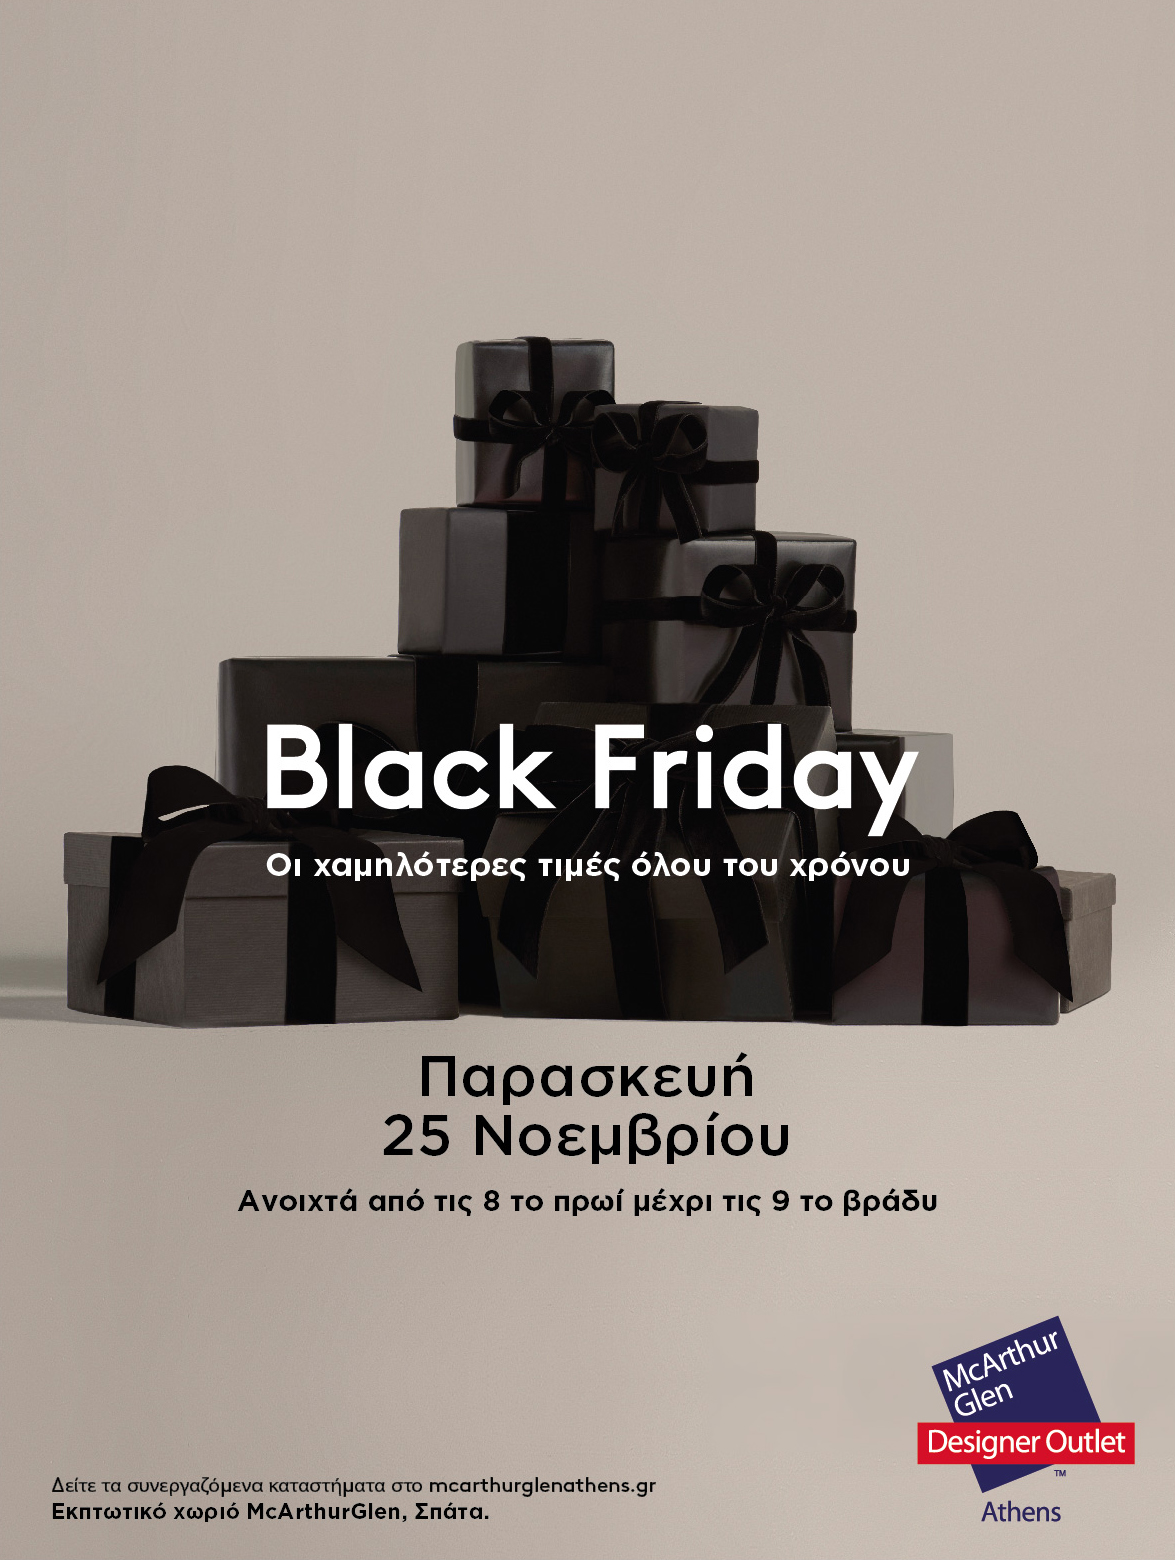 ktx Black Friday 20x265 01 2